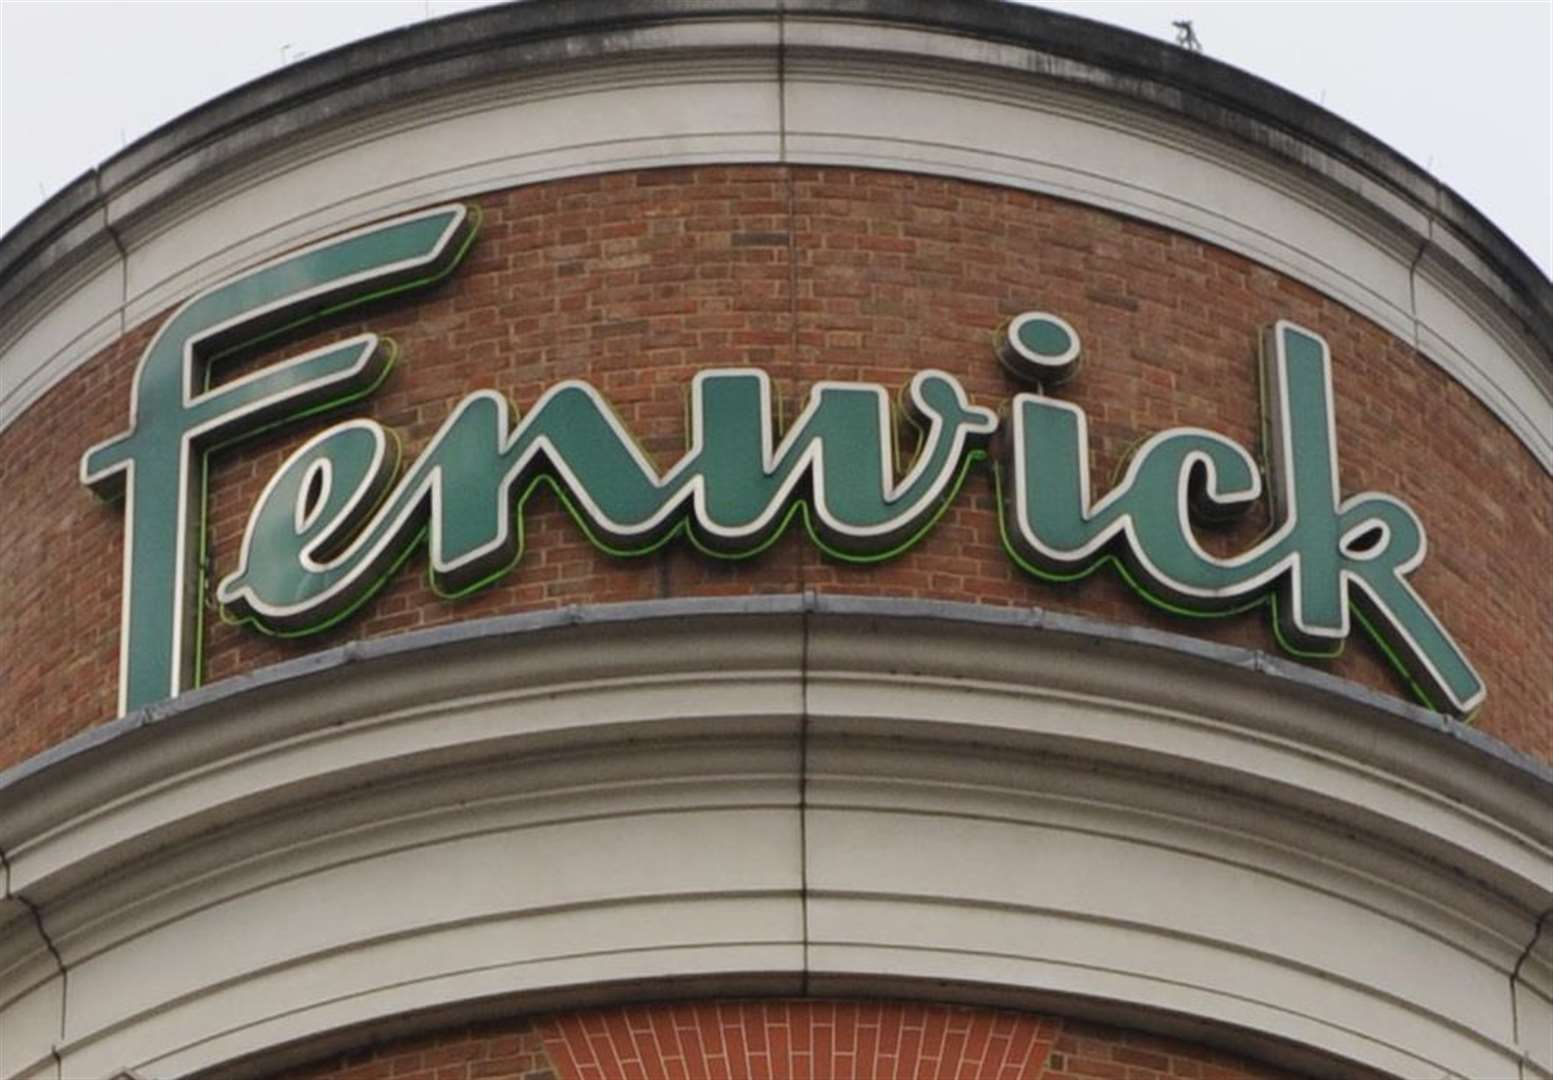 Job cuts at Fenwick